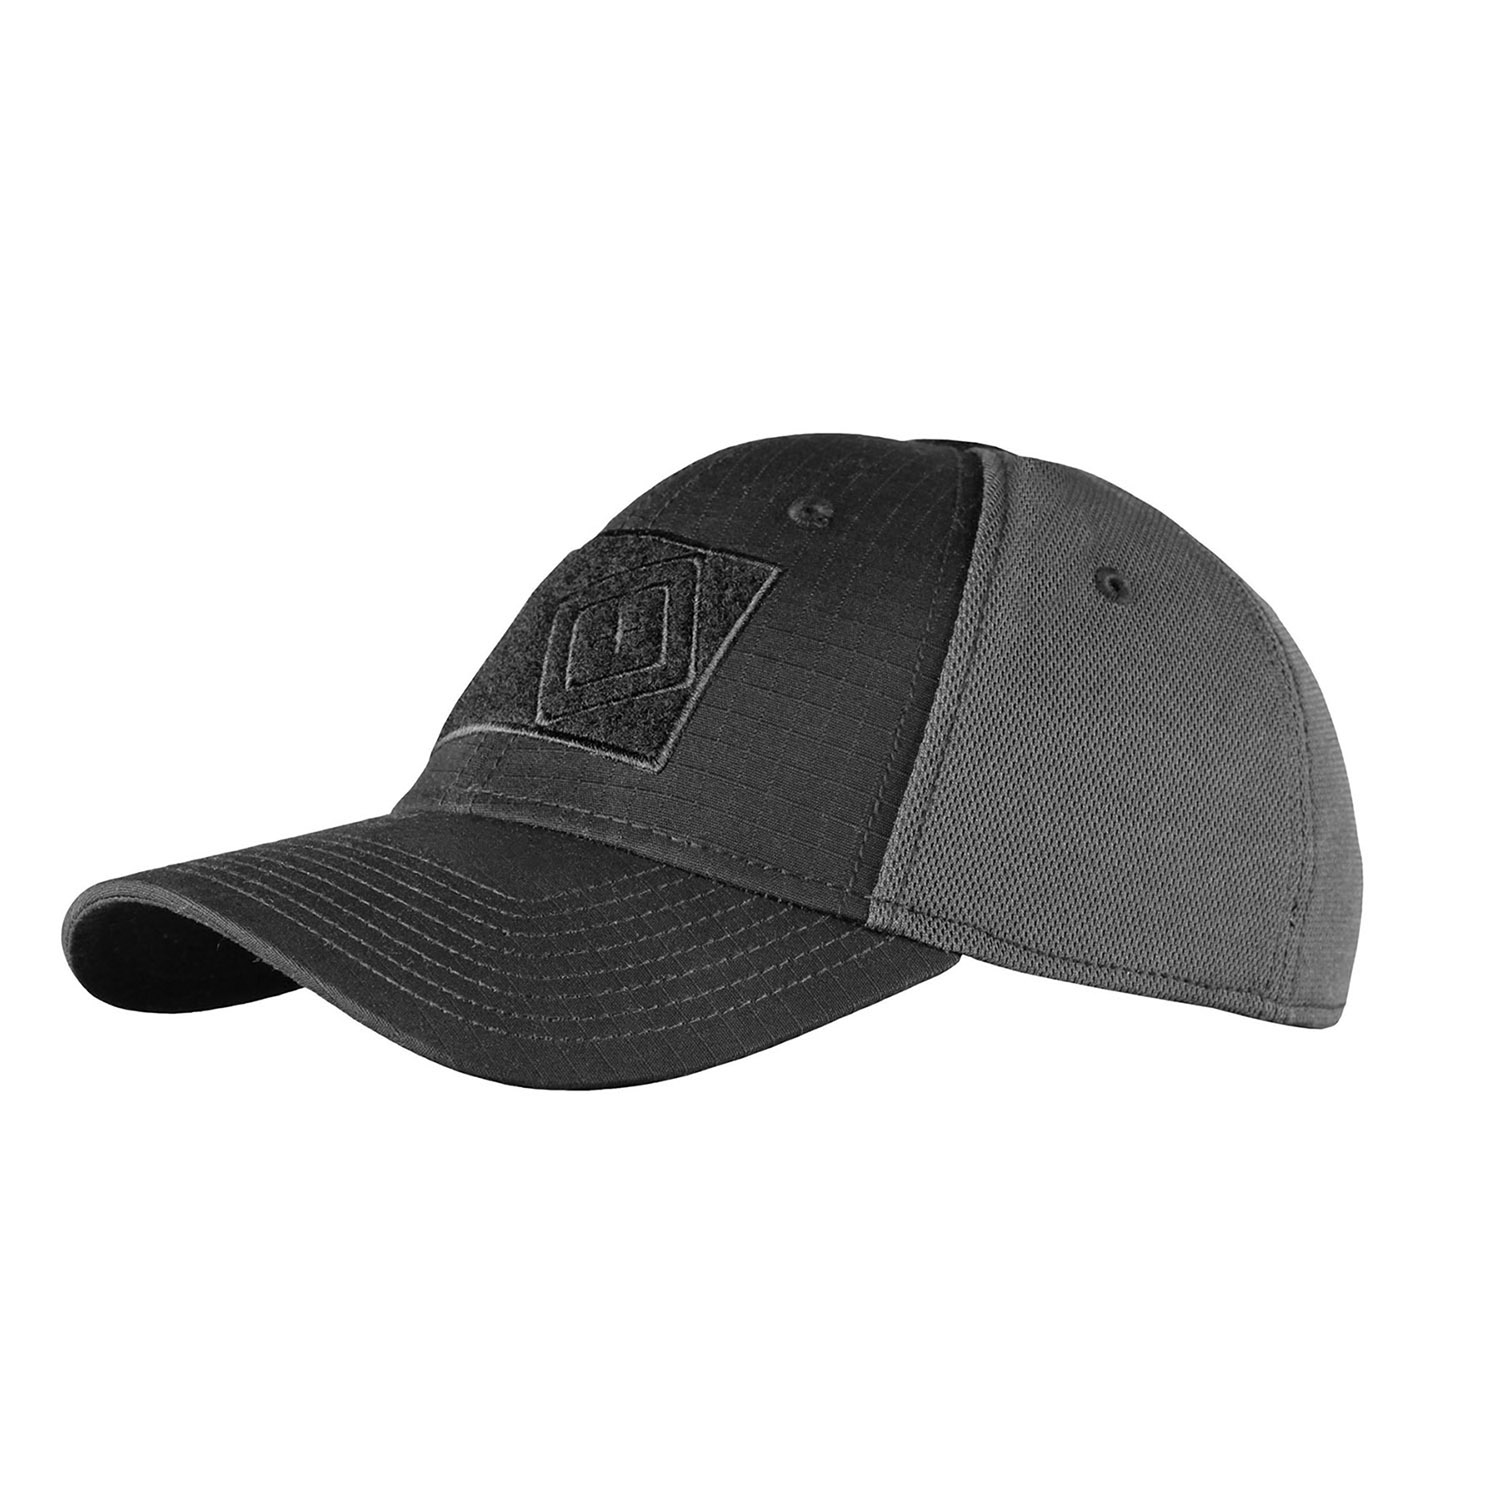 5.11 Tactical Downrange Cap